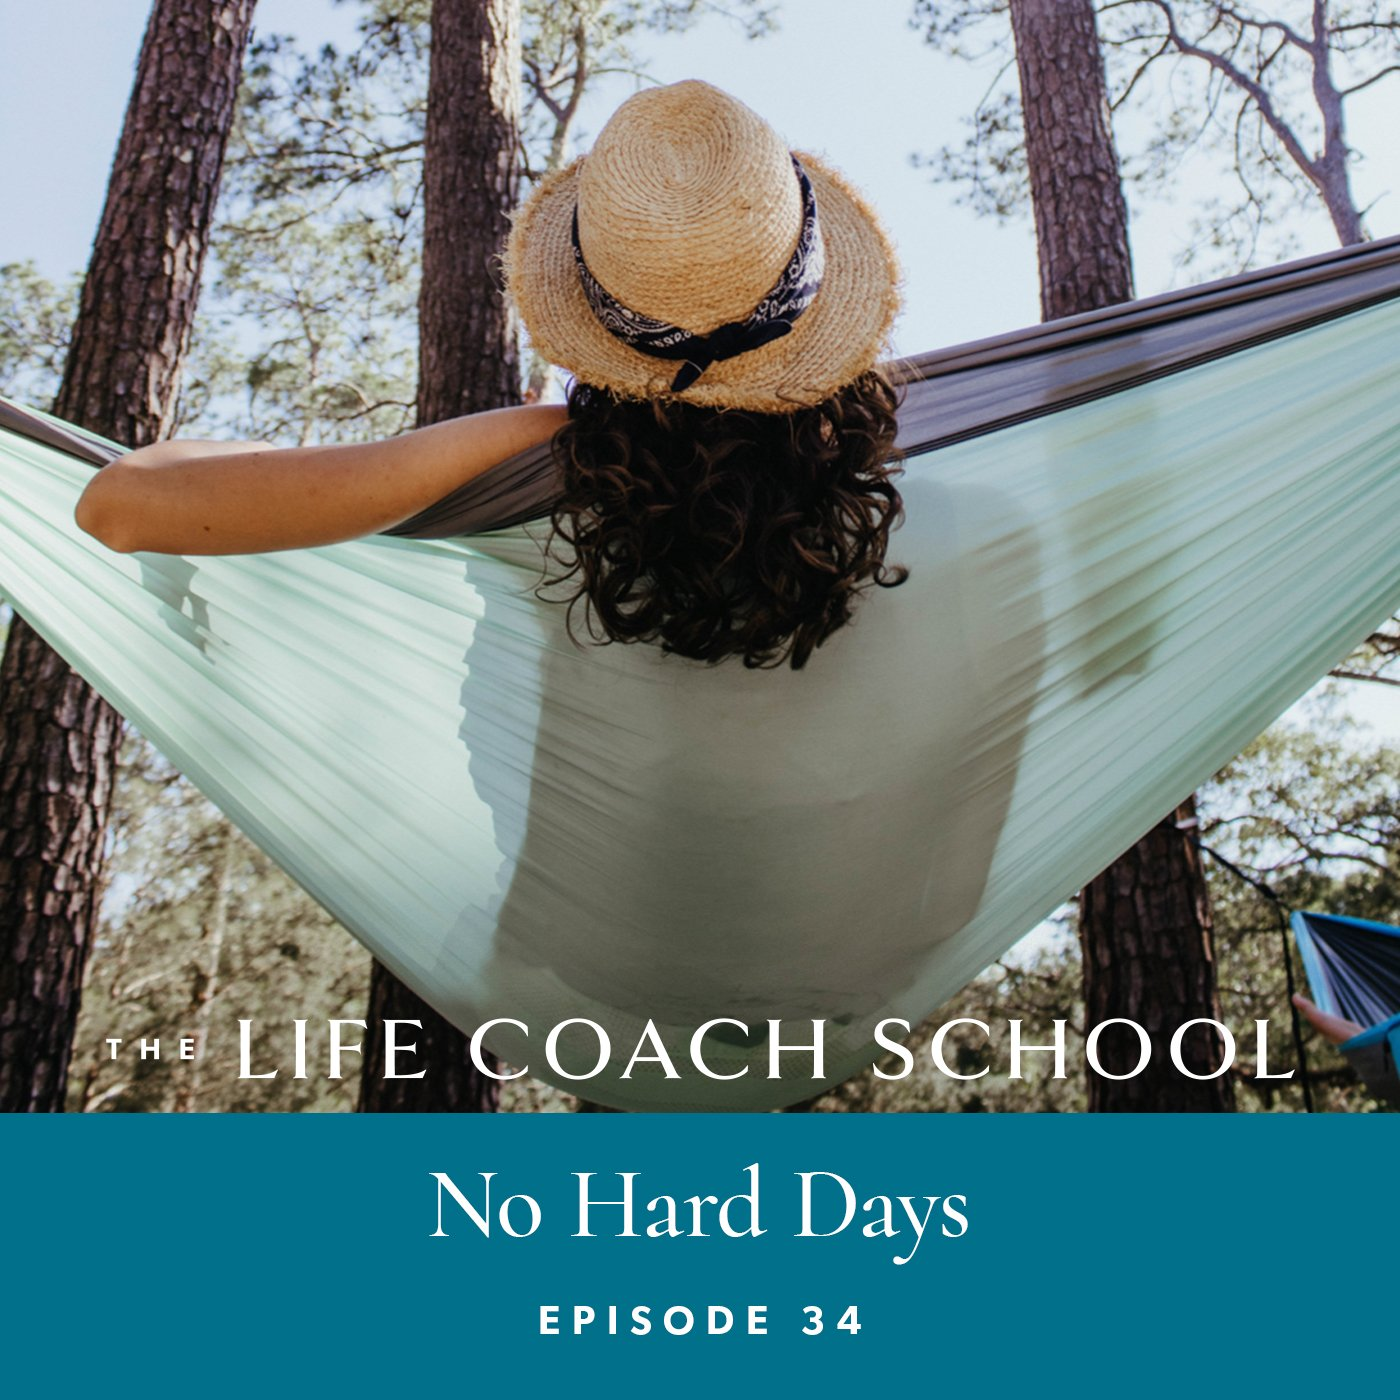 The Life Coach School Podcast with Brooke Castillo | Episode 34 | No Hard Days